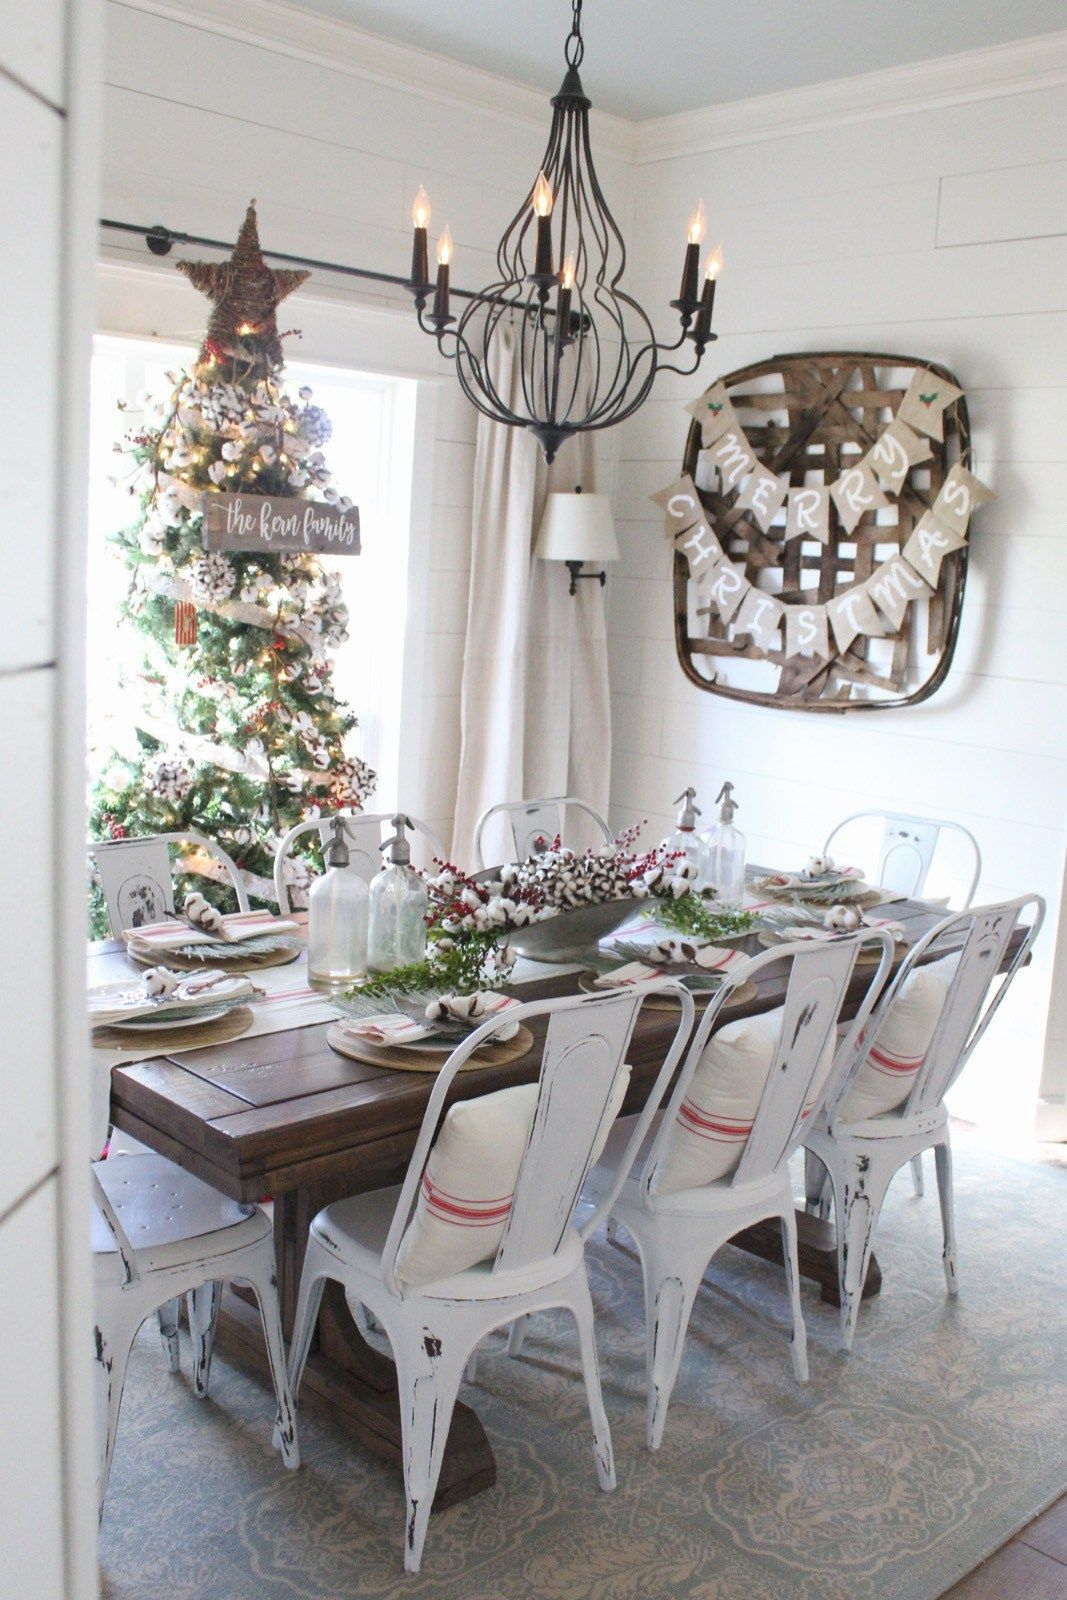 The Rustic Pig Cottonstem Dining Room TableScapes